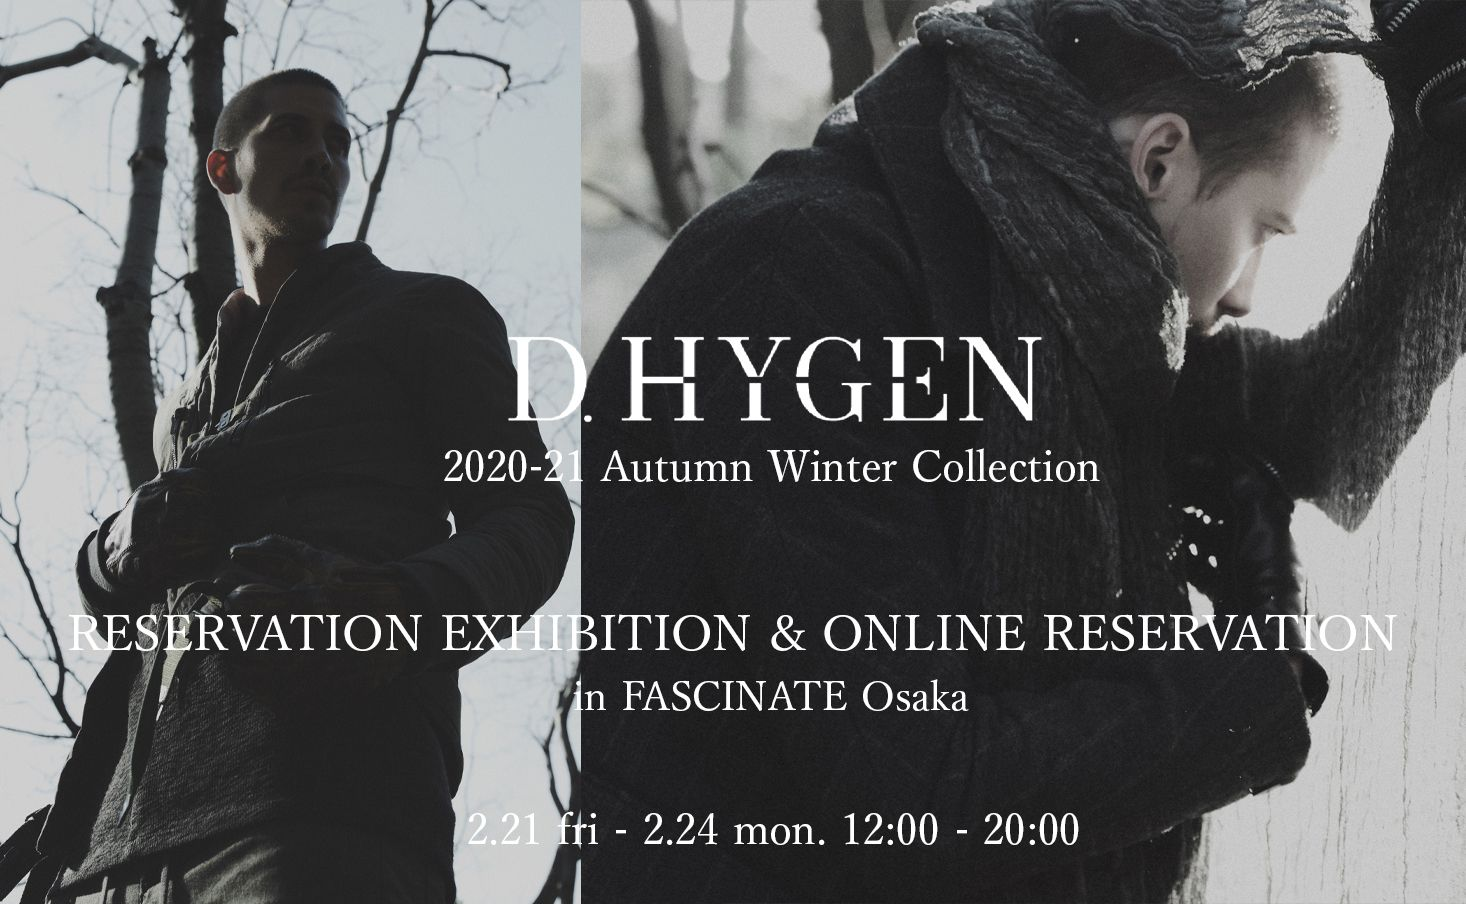 D.HYGEN [SADDAM TEISSY] 20-21AW Collection